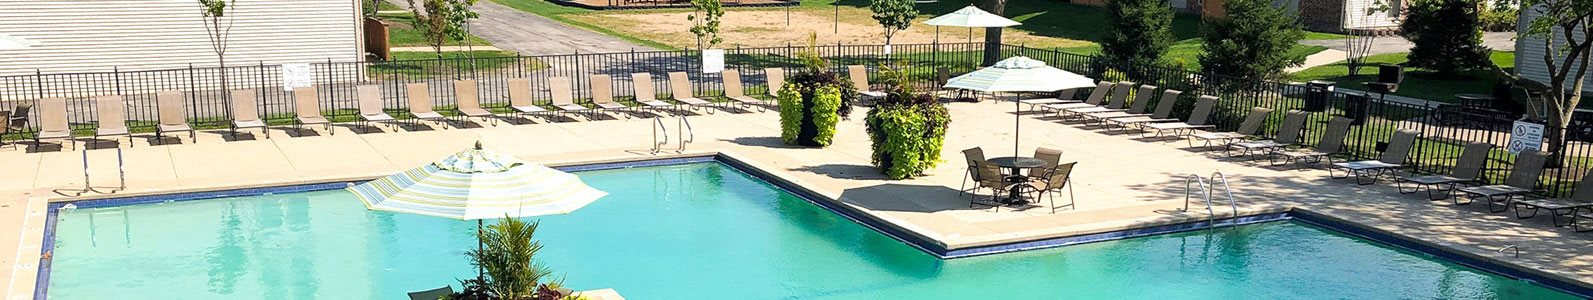 Crystal Clear Swimming Pool Orion Prospect